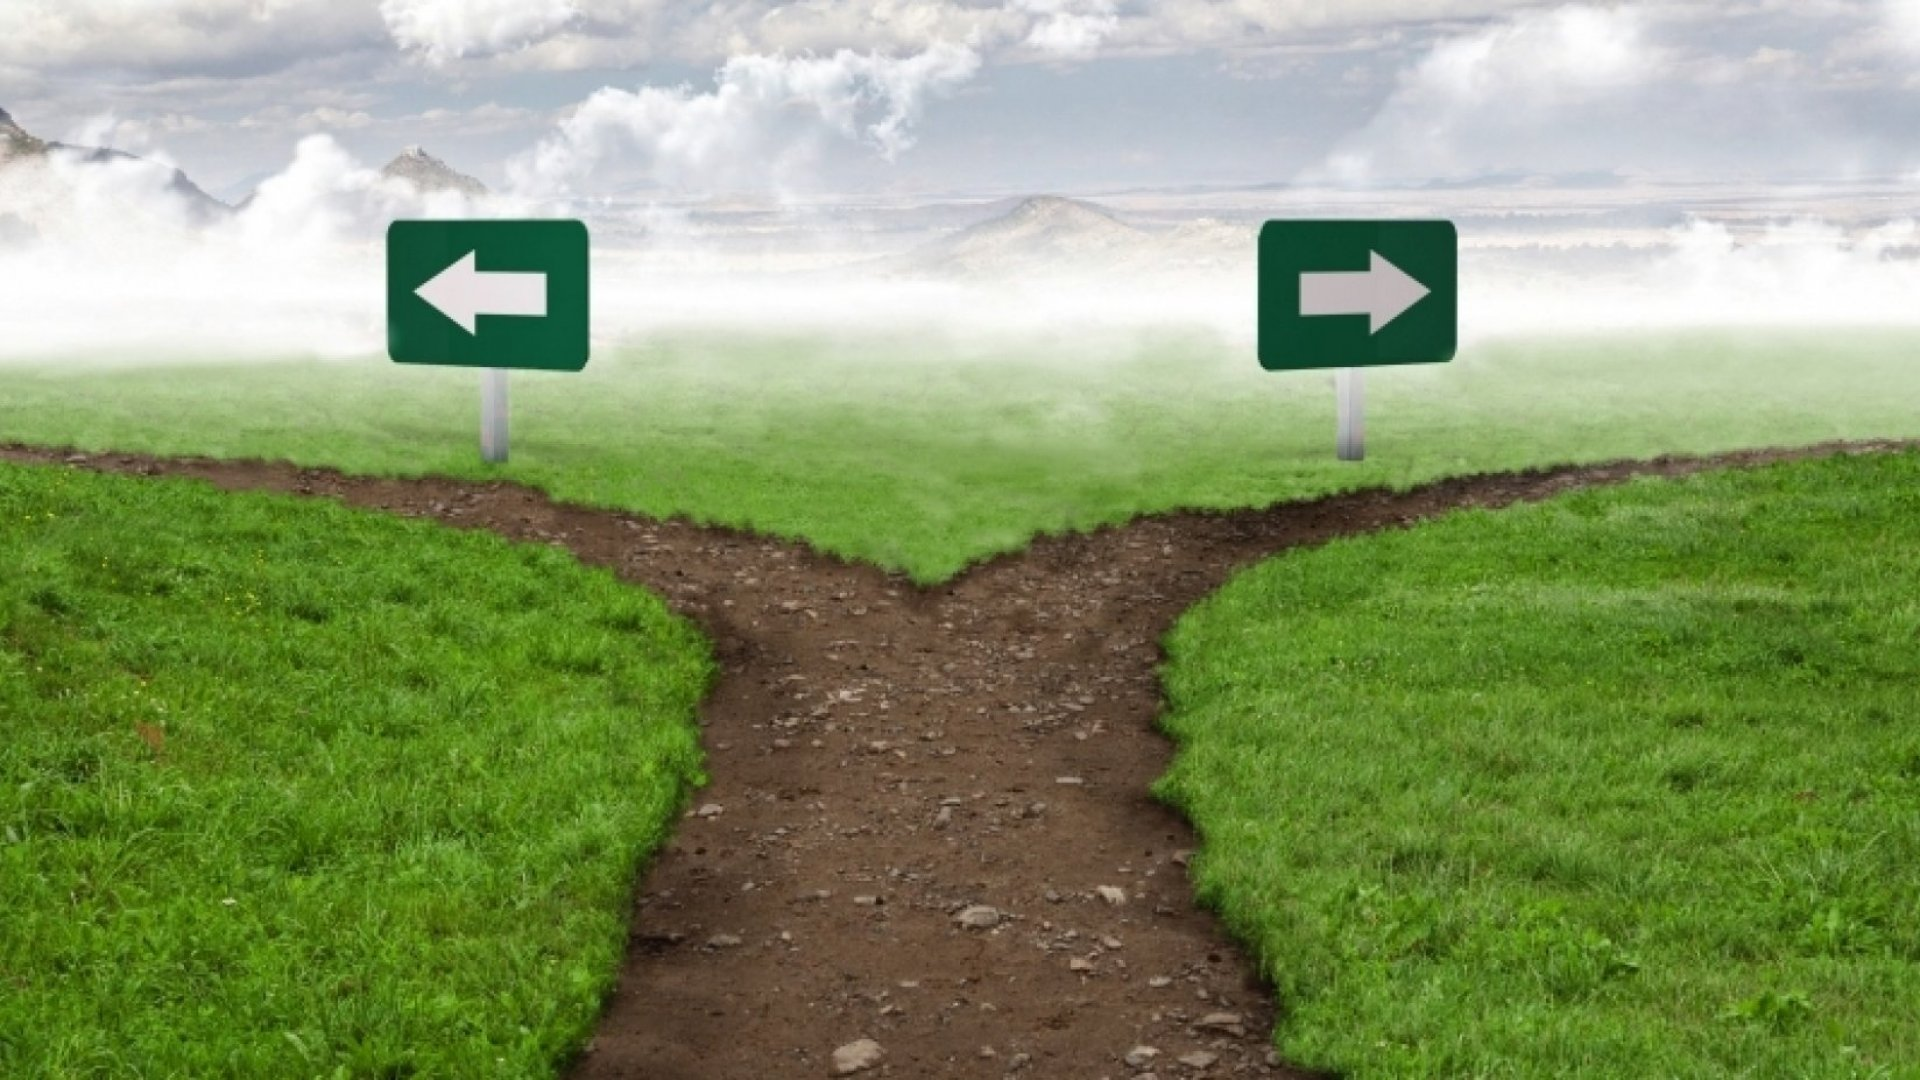 How To Make the Hardest Business Decision Ever